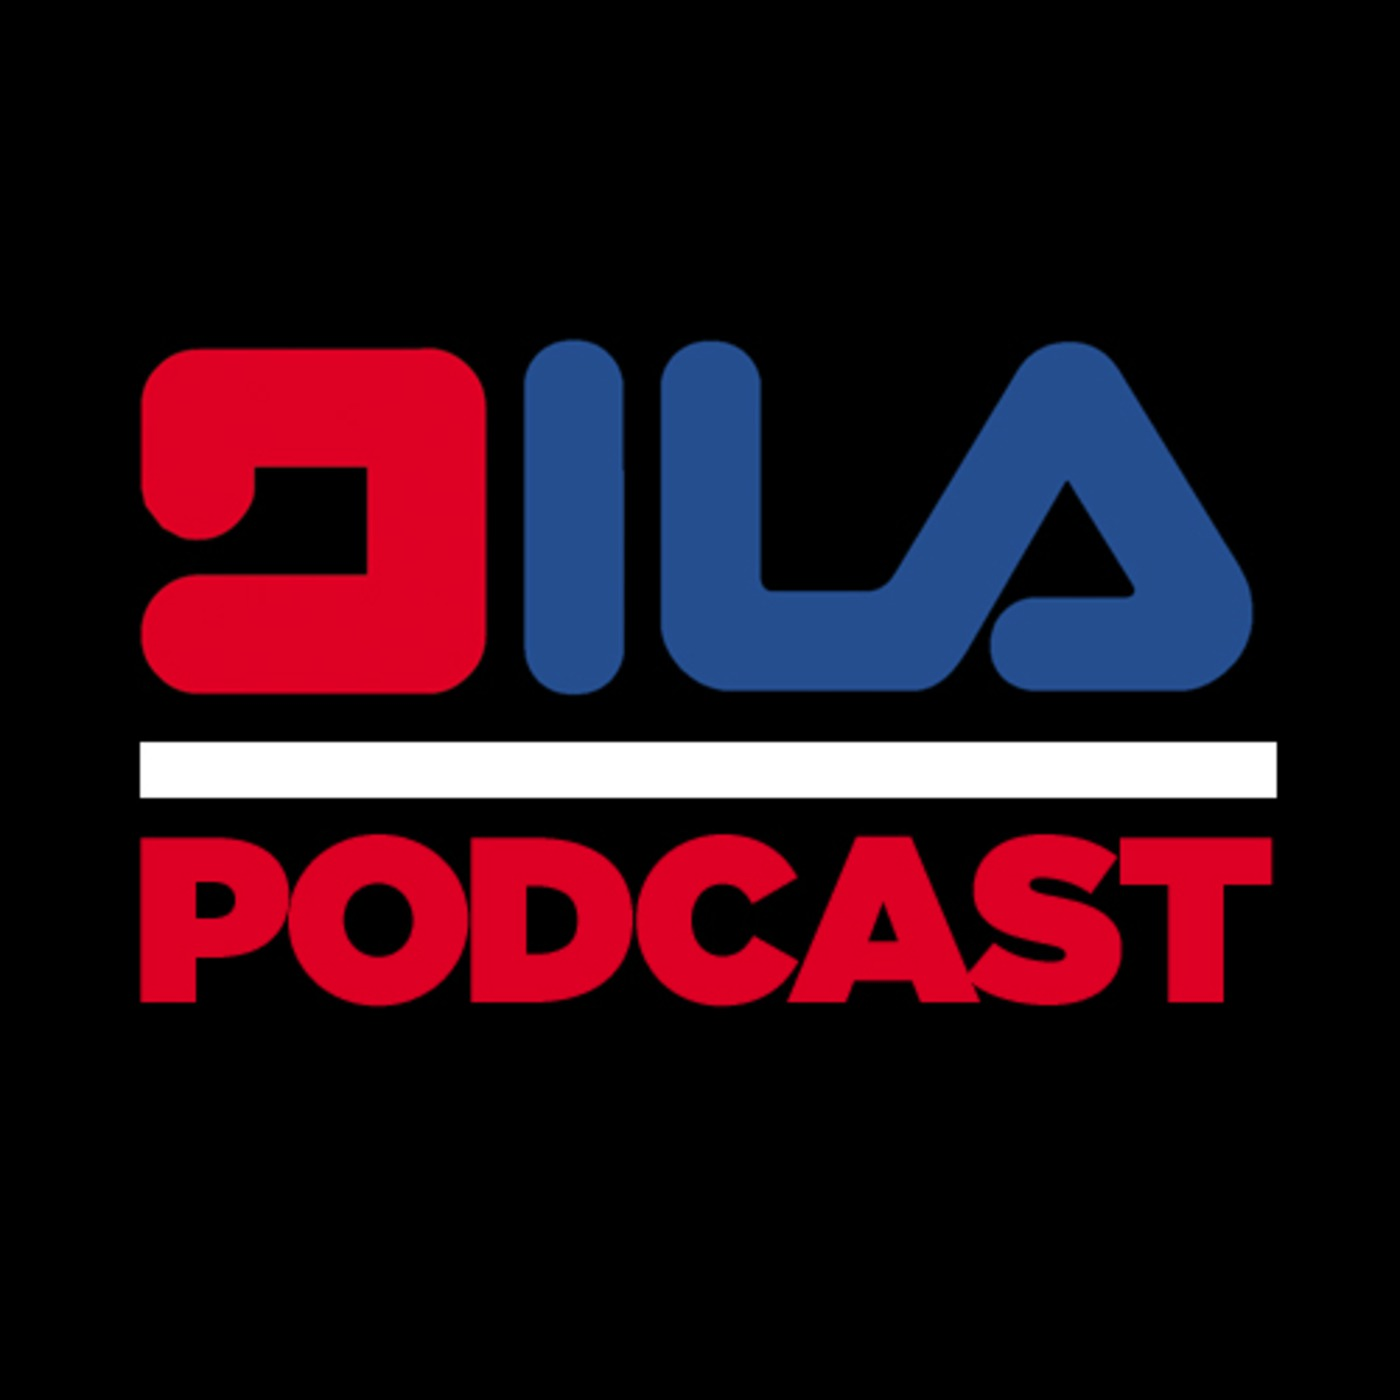 Dj Dyla's Podcast